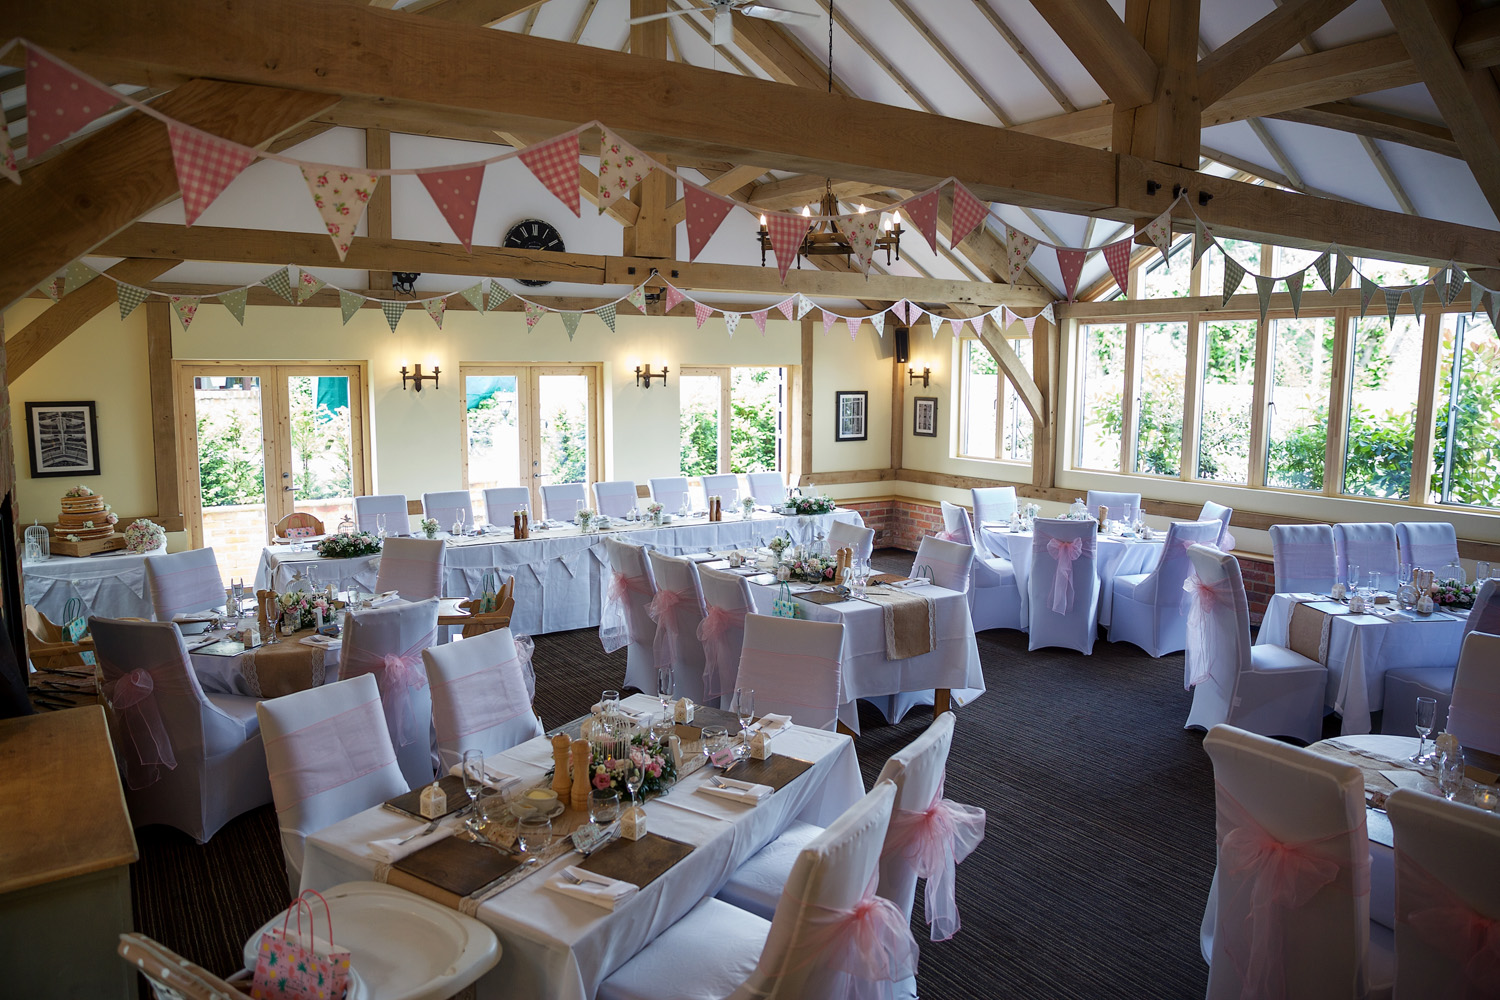 The Barn wedding venue at the Hare and Hounds Newbury, Berkshire